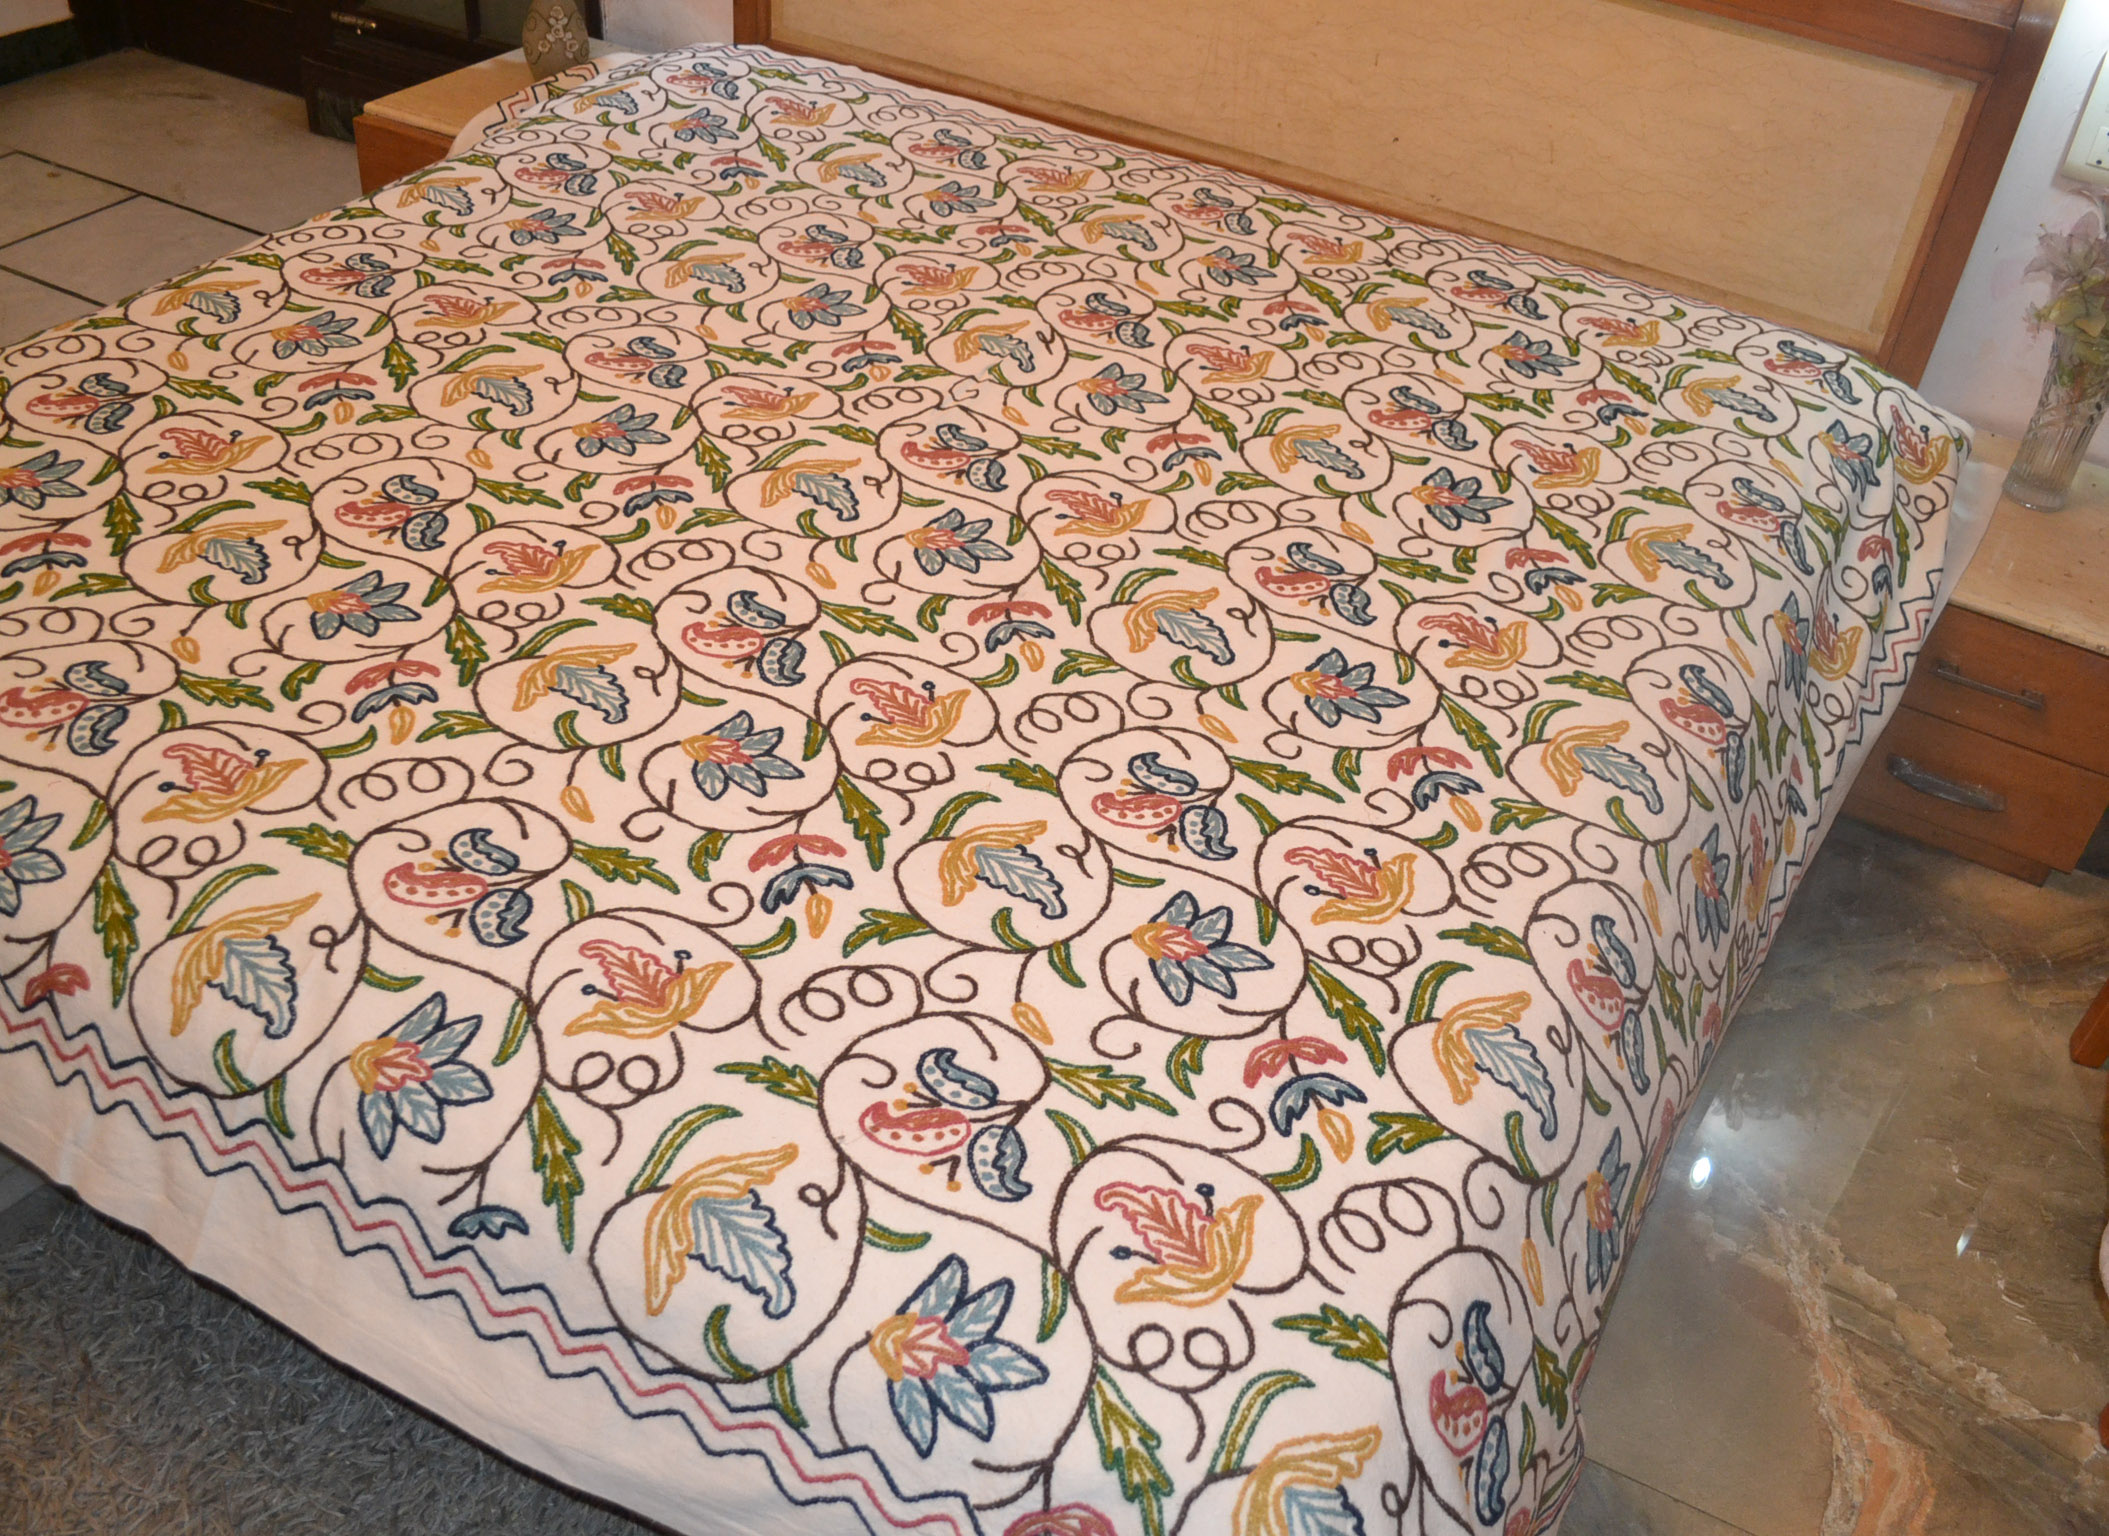 Brazilian embroidery bedspread designs - Design No